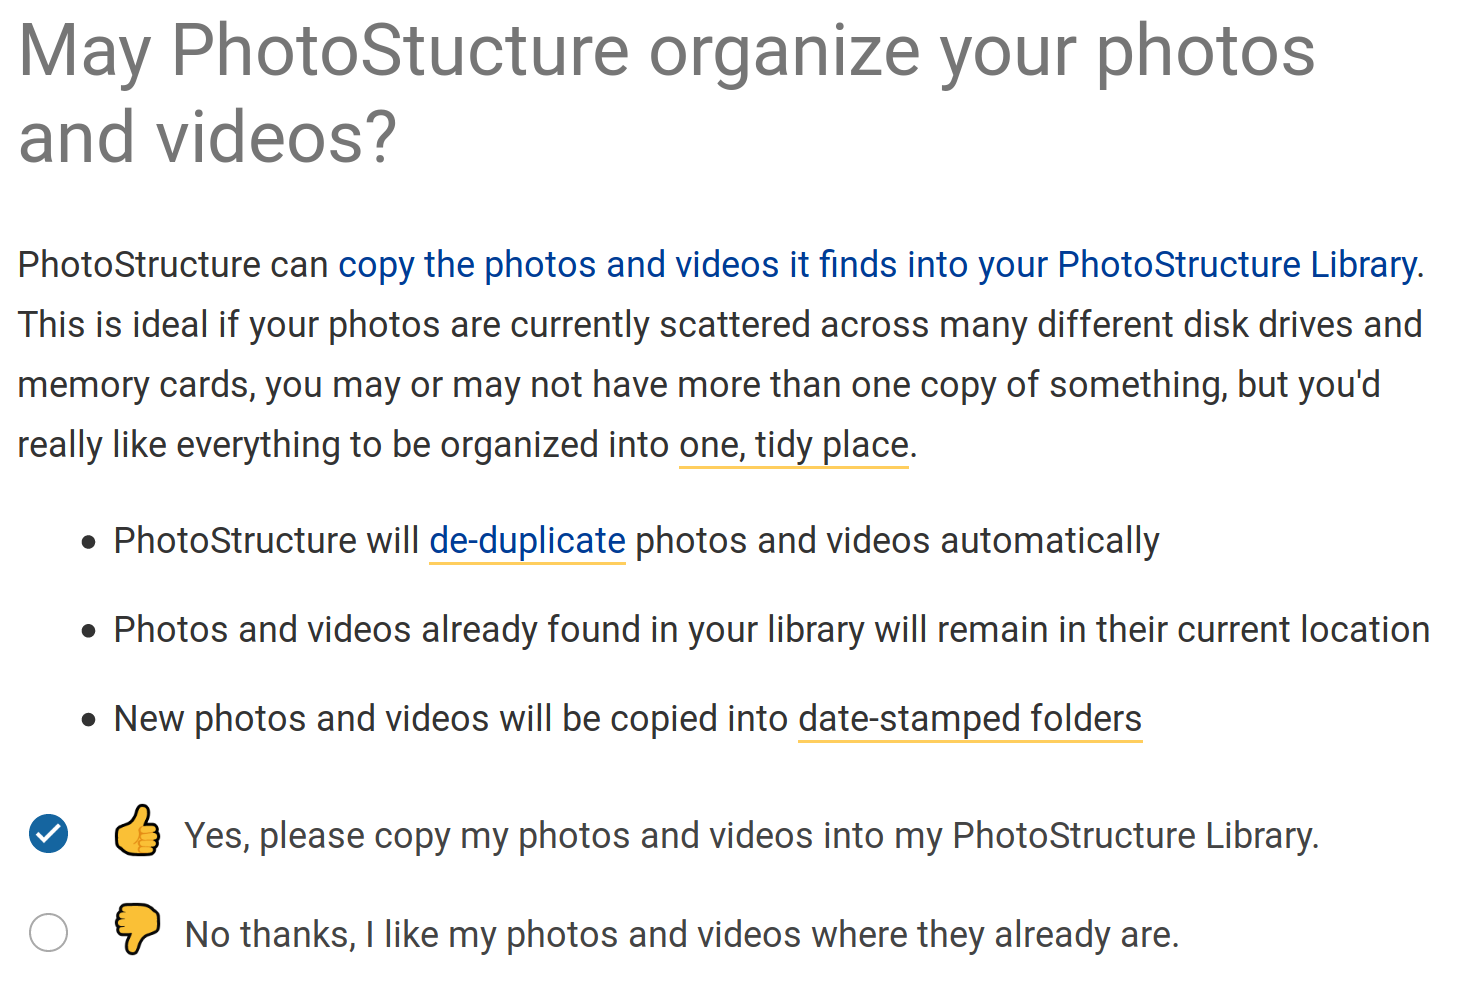 Screenshot from PhotoStructure's welcome page